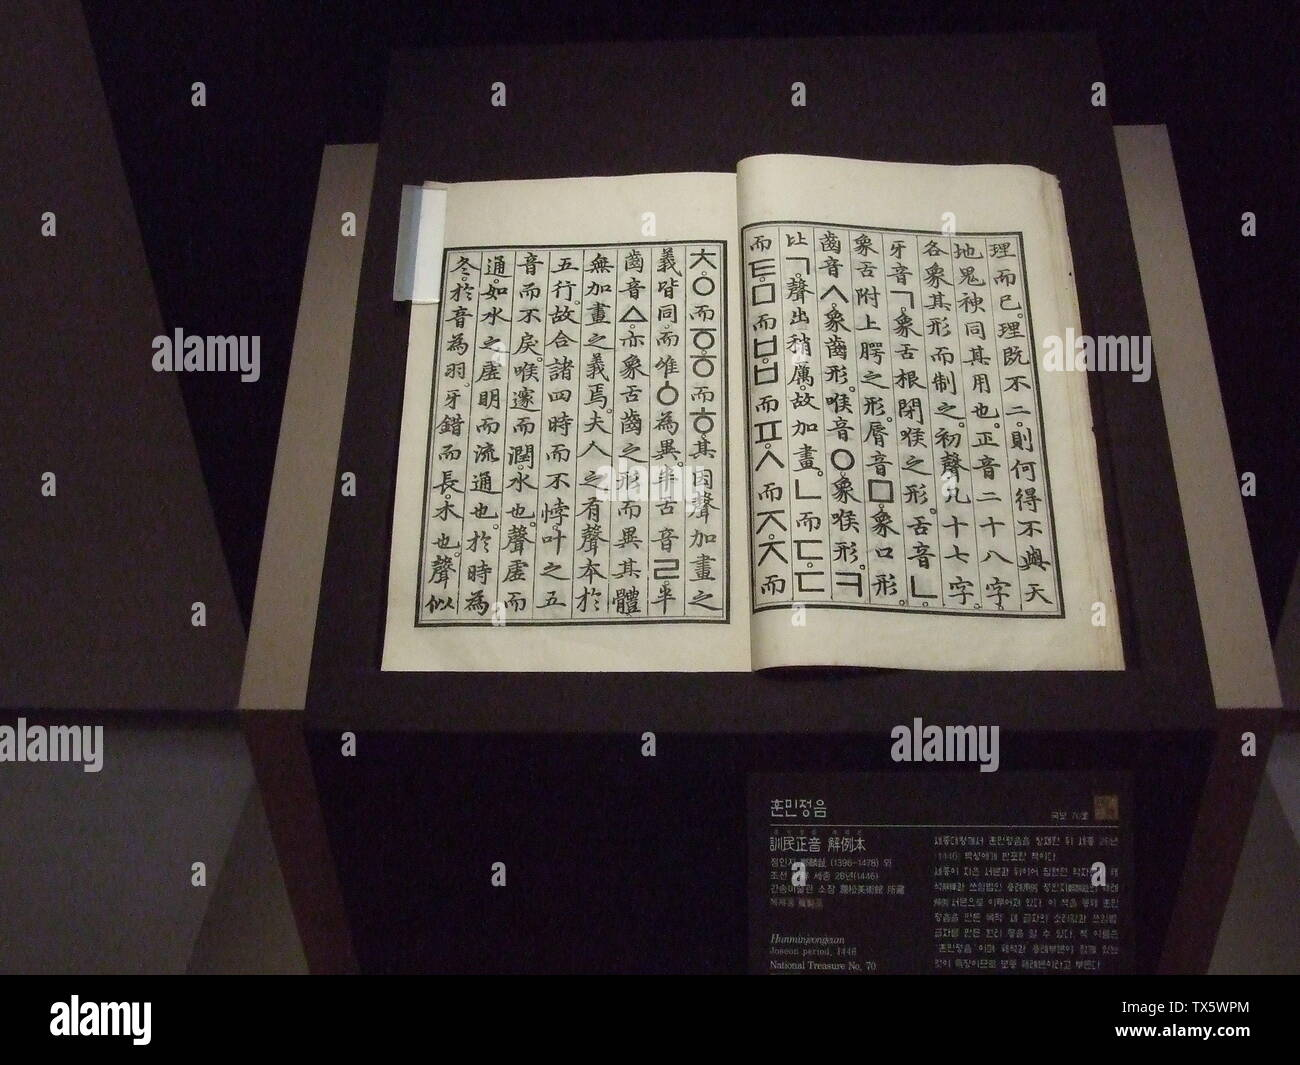 Replica of Hunmin Jeongeum Haerye, the book in which the creation of hangul is explained. Picture taken at the National Museum Korea in Seoul. Hunmin Jeongeum Haerye is designated as the 70th National treasure of South Korea.; 24 June 2007 (original upload date); First uploaded as en:Image:Hunminjeongeum.jpg on 17:58, 2007 June 24 by Kbarends. Moved due to misnaming.; Kbarends at English pedia; Stock Photo